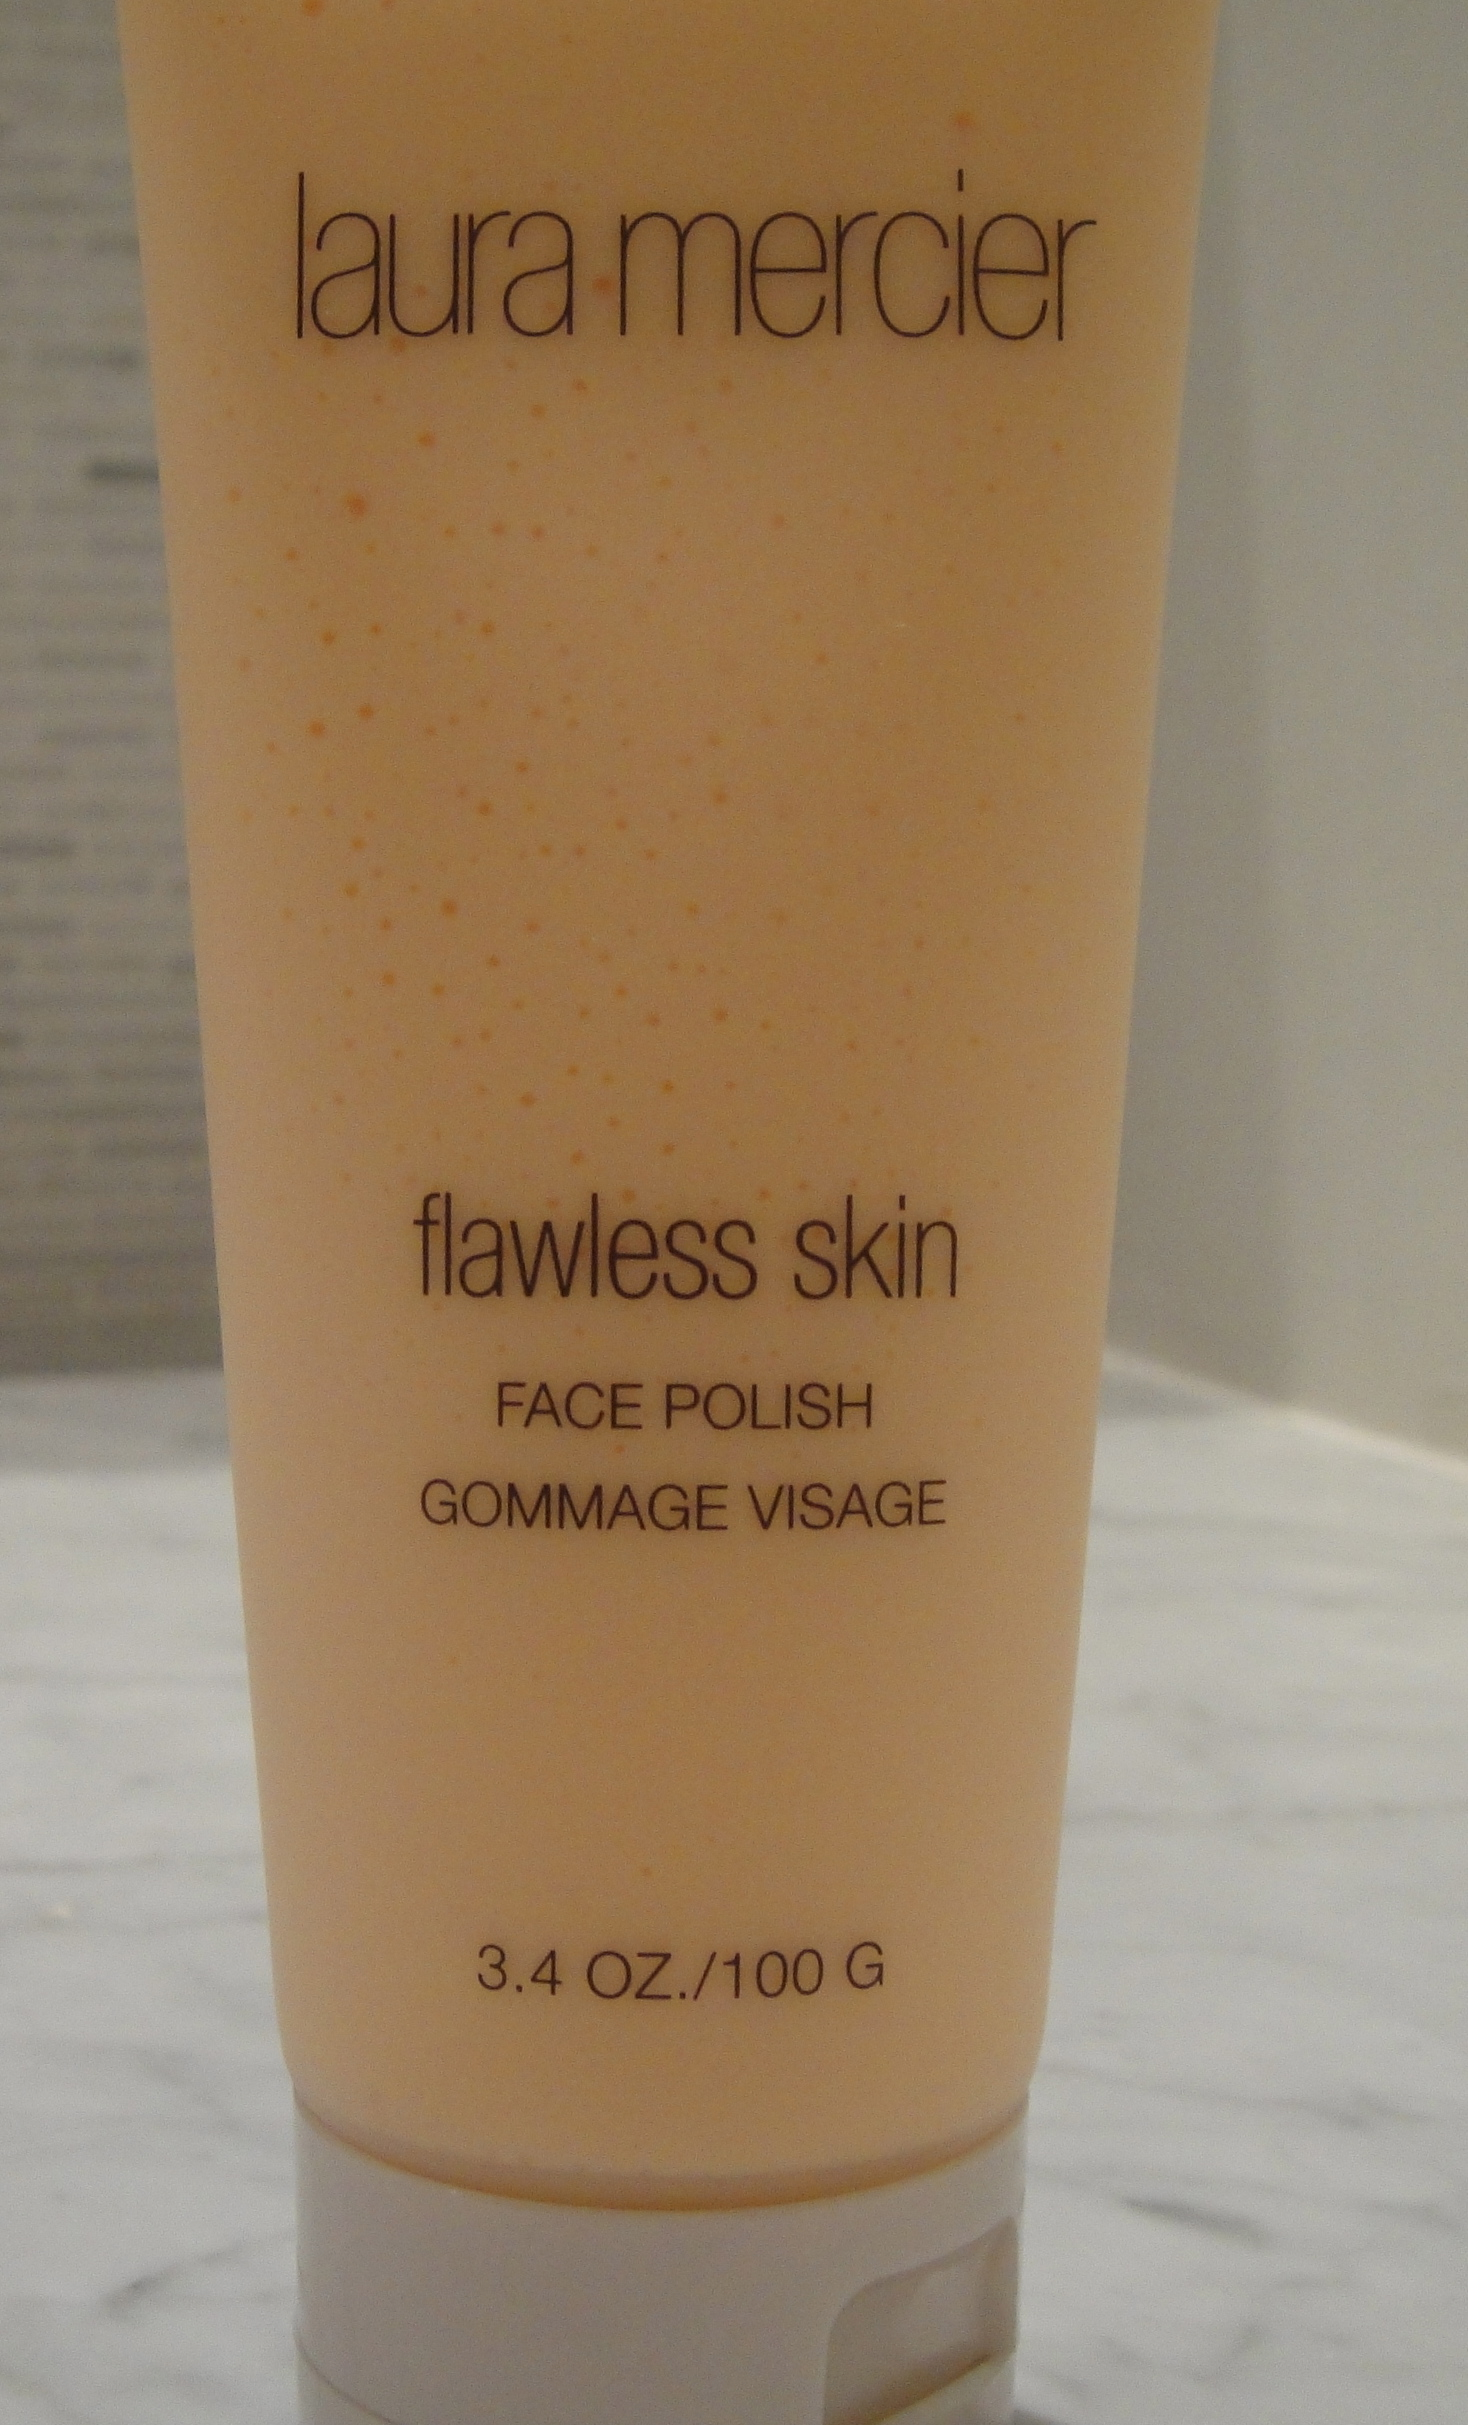 Extra: Laura Mercier, Flawless Skin Face Polish